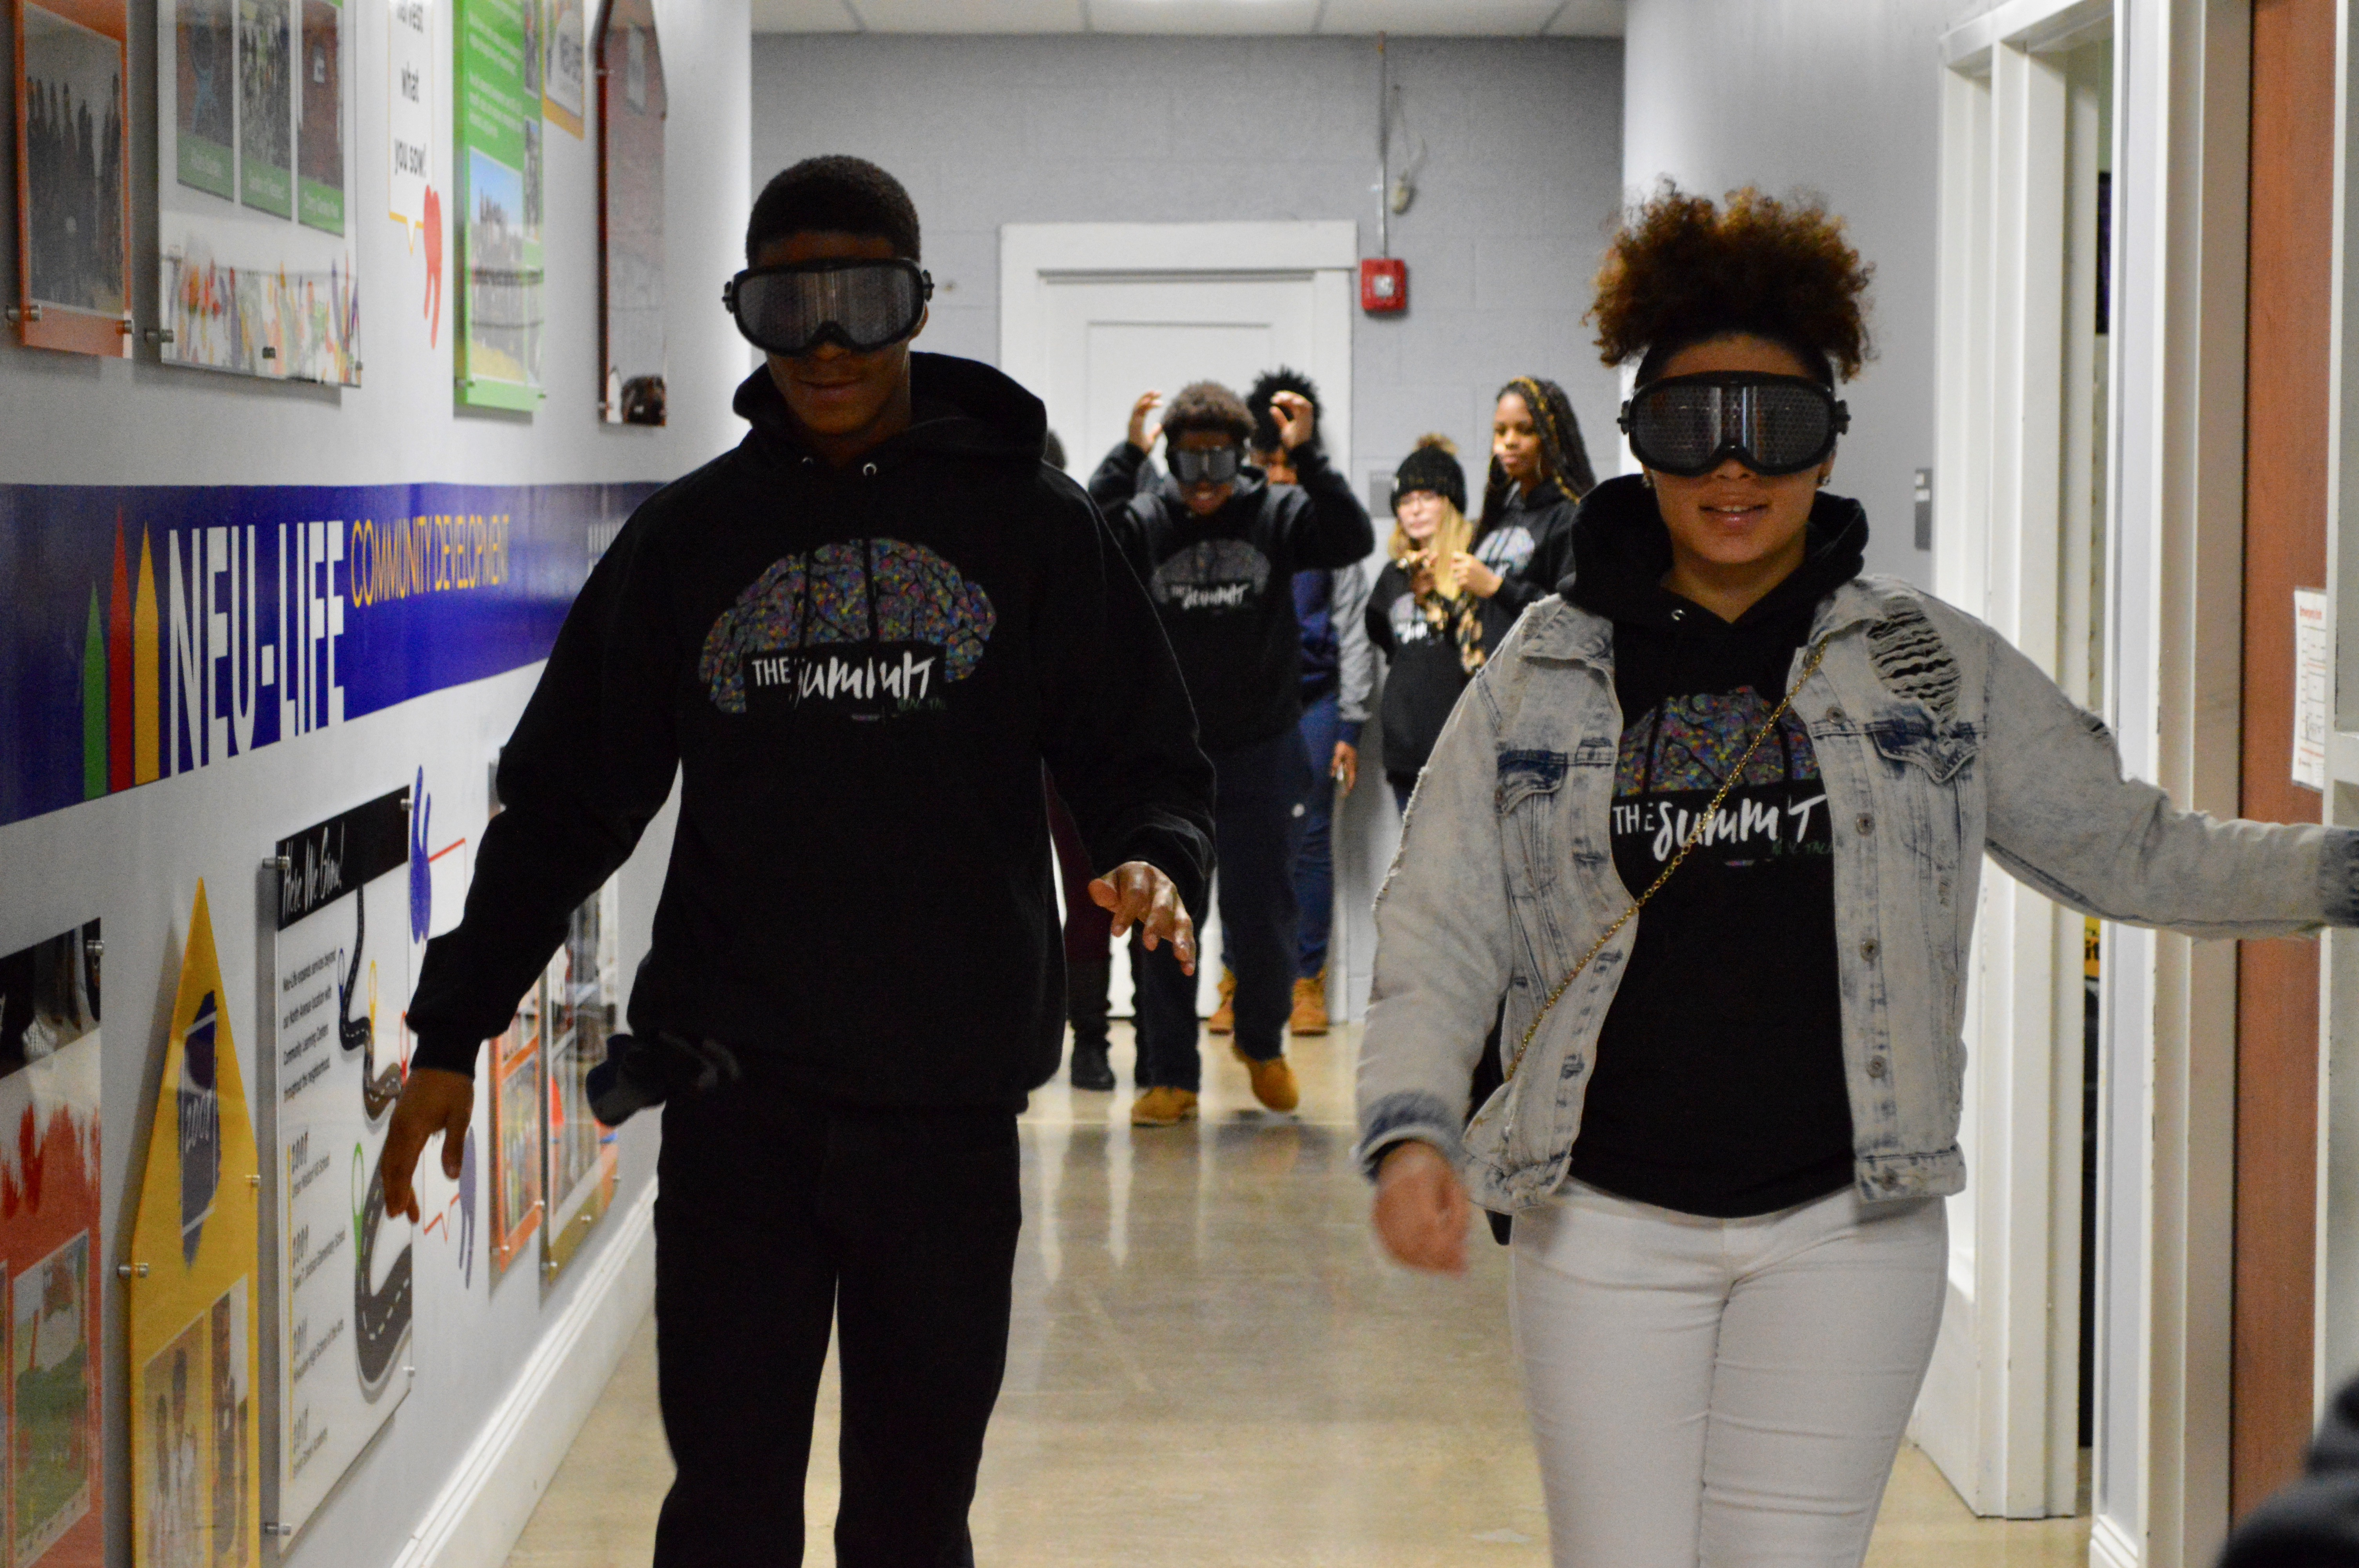 """Two students attempt to walk down the hallway wearing """"impairment goggles"""" that blurred their vision in a way that a person impaired by drugs would experience. Photo by Analise Pruni/NNS."""